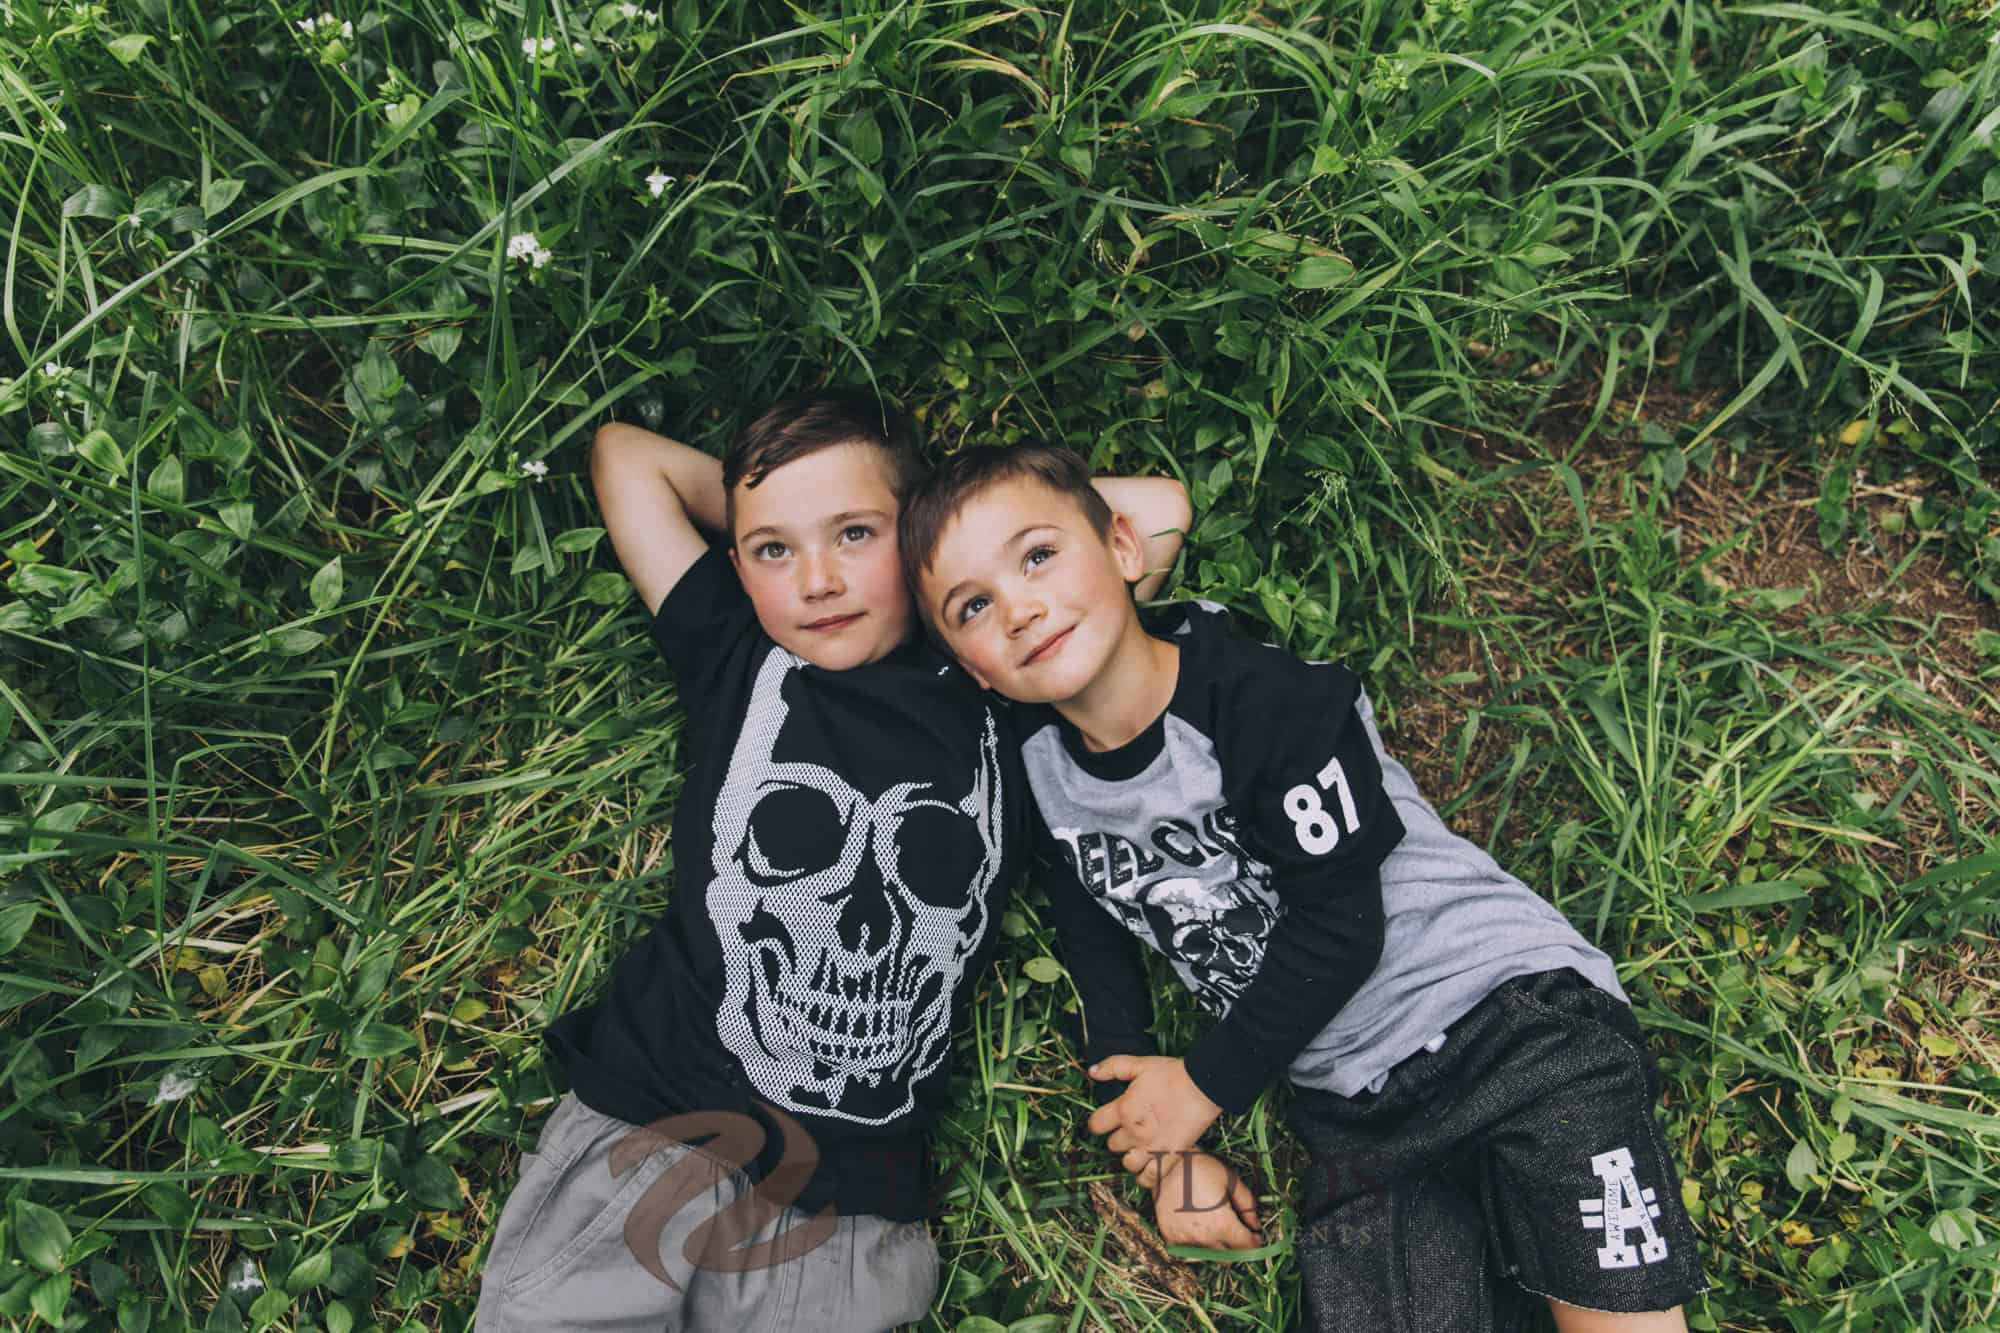 Manawatu children portrait photography by Binh Trinh with these two awesome brothers